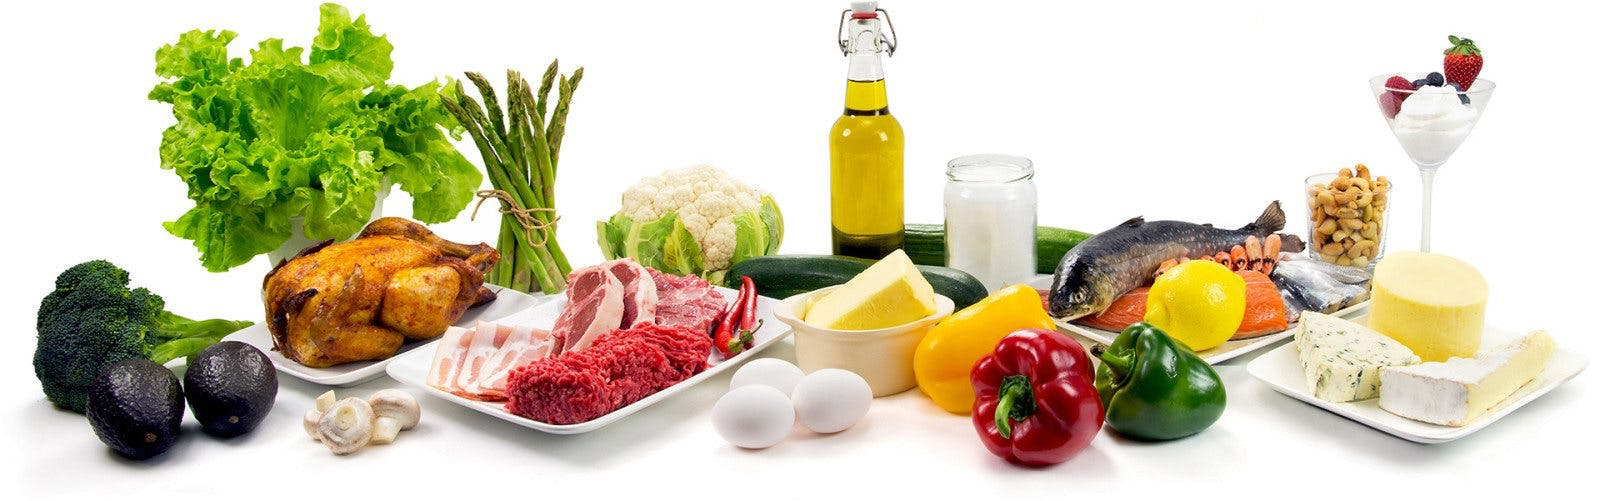 New Study: Improved Diabetes Control With a Low-Carb Diet